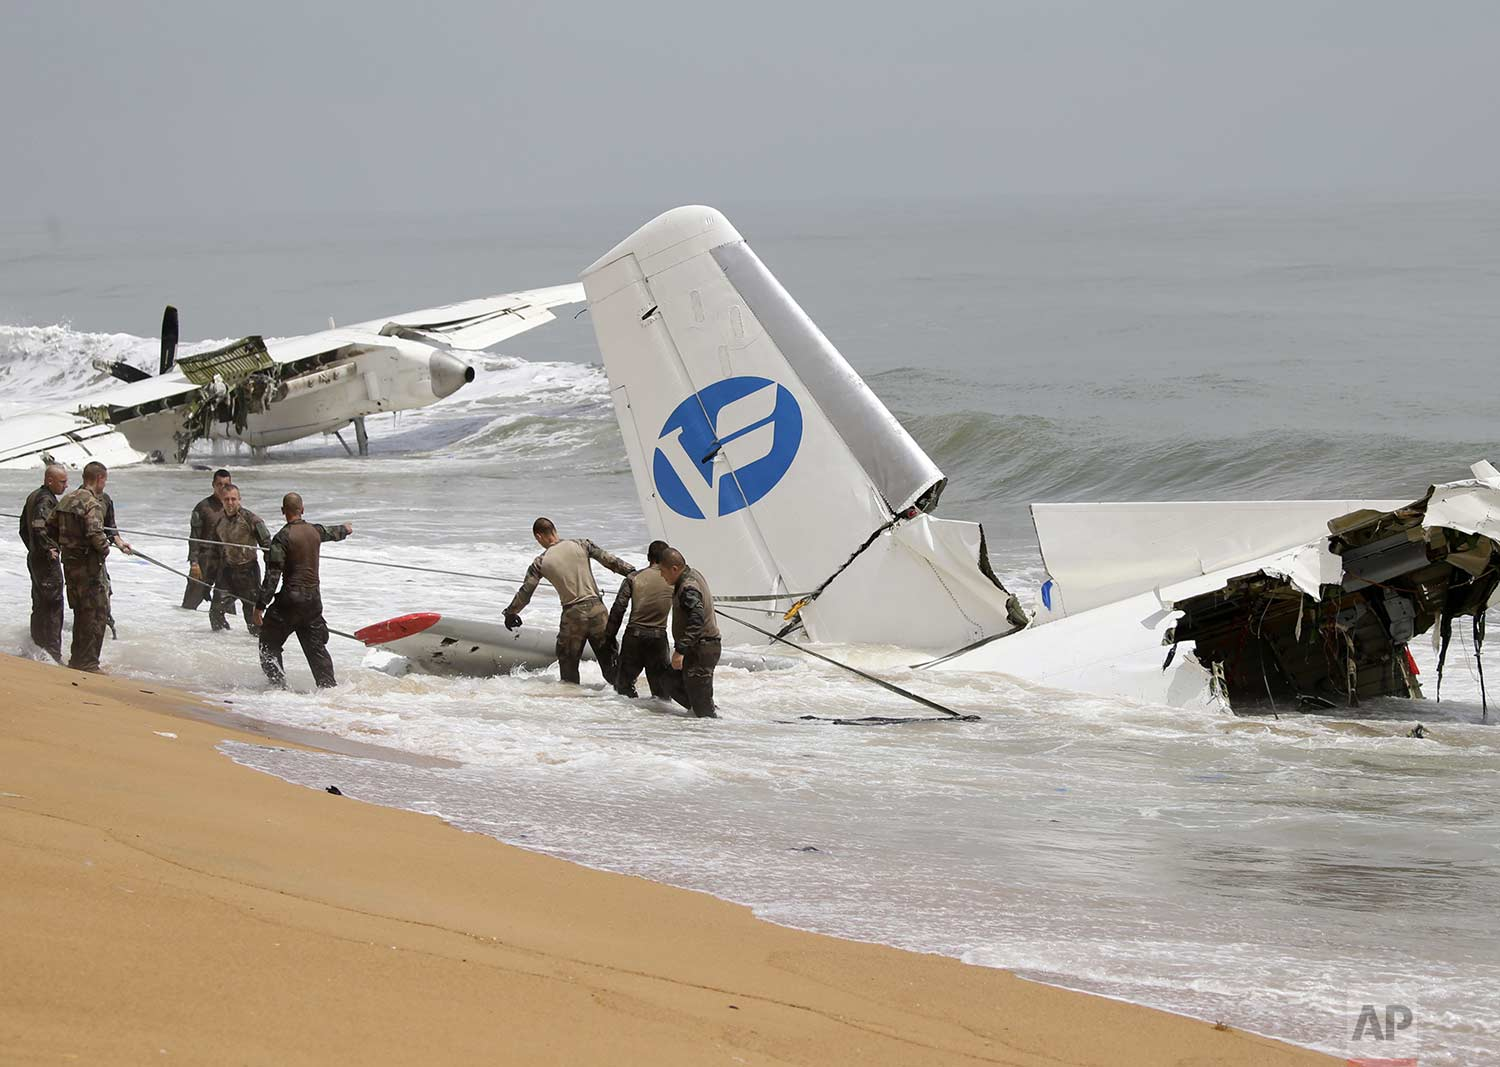 French troops try to pull parts of a cargo plane onto the shore in Abidjan, Ivory Coast on Saturday Oct. 14, 2017. (AP Photo/Diomande Ble Blonde)